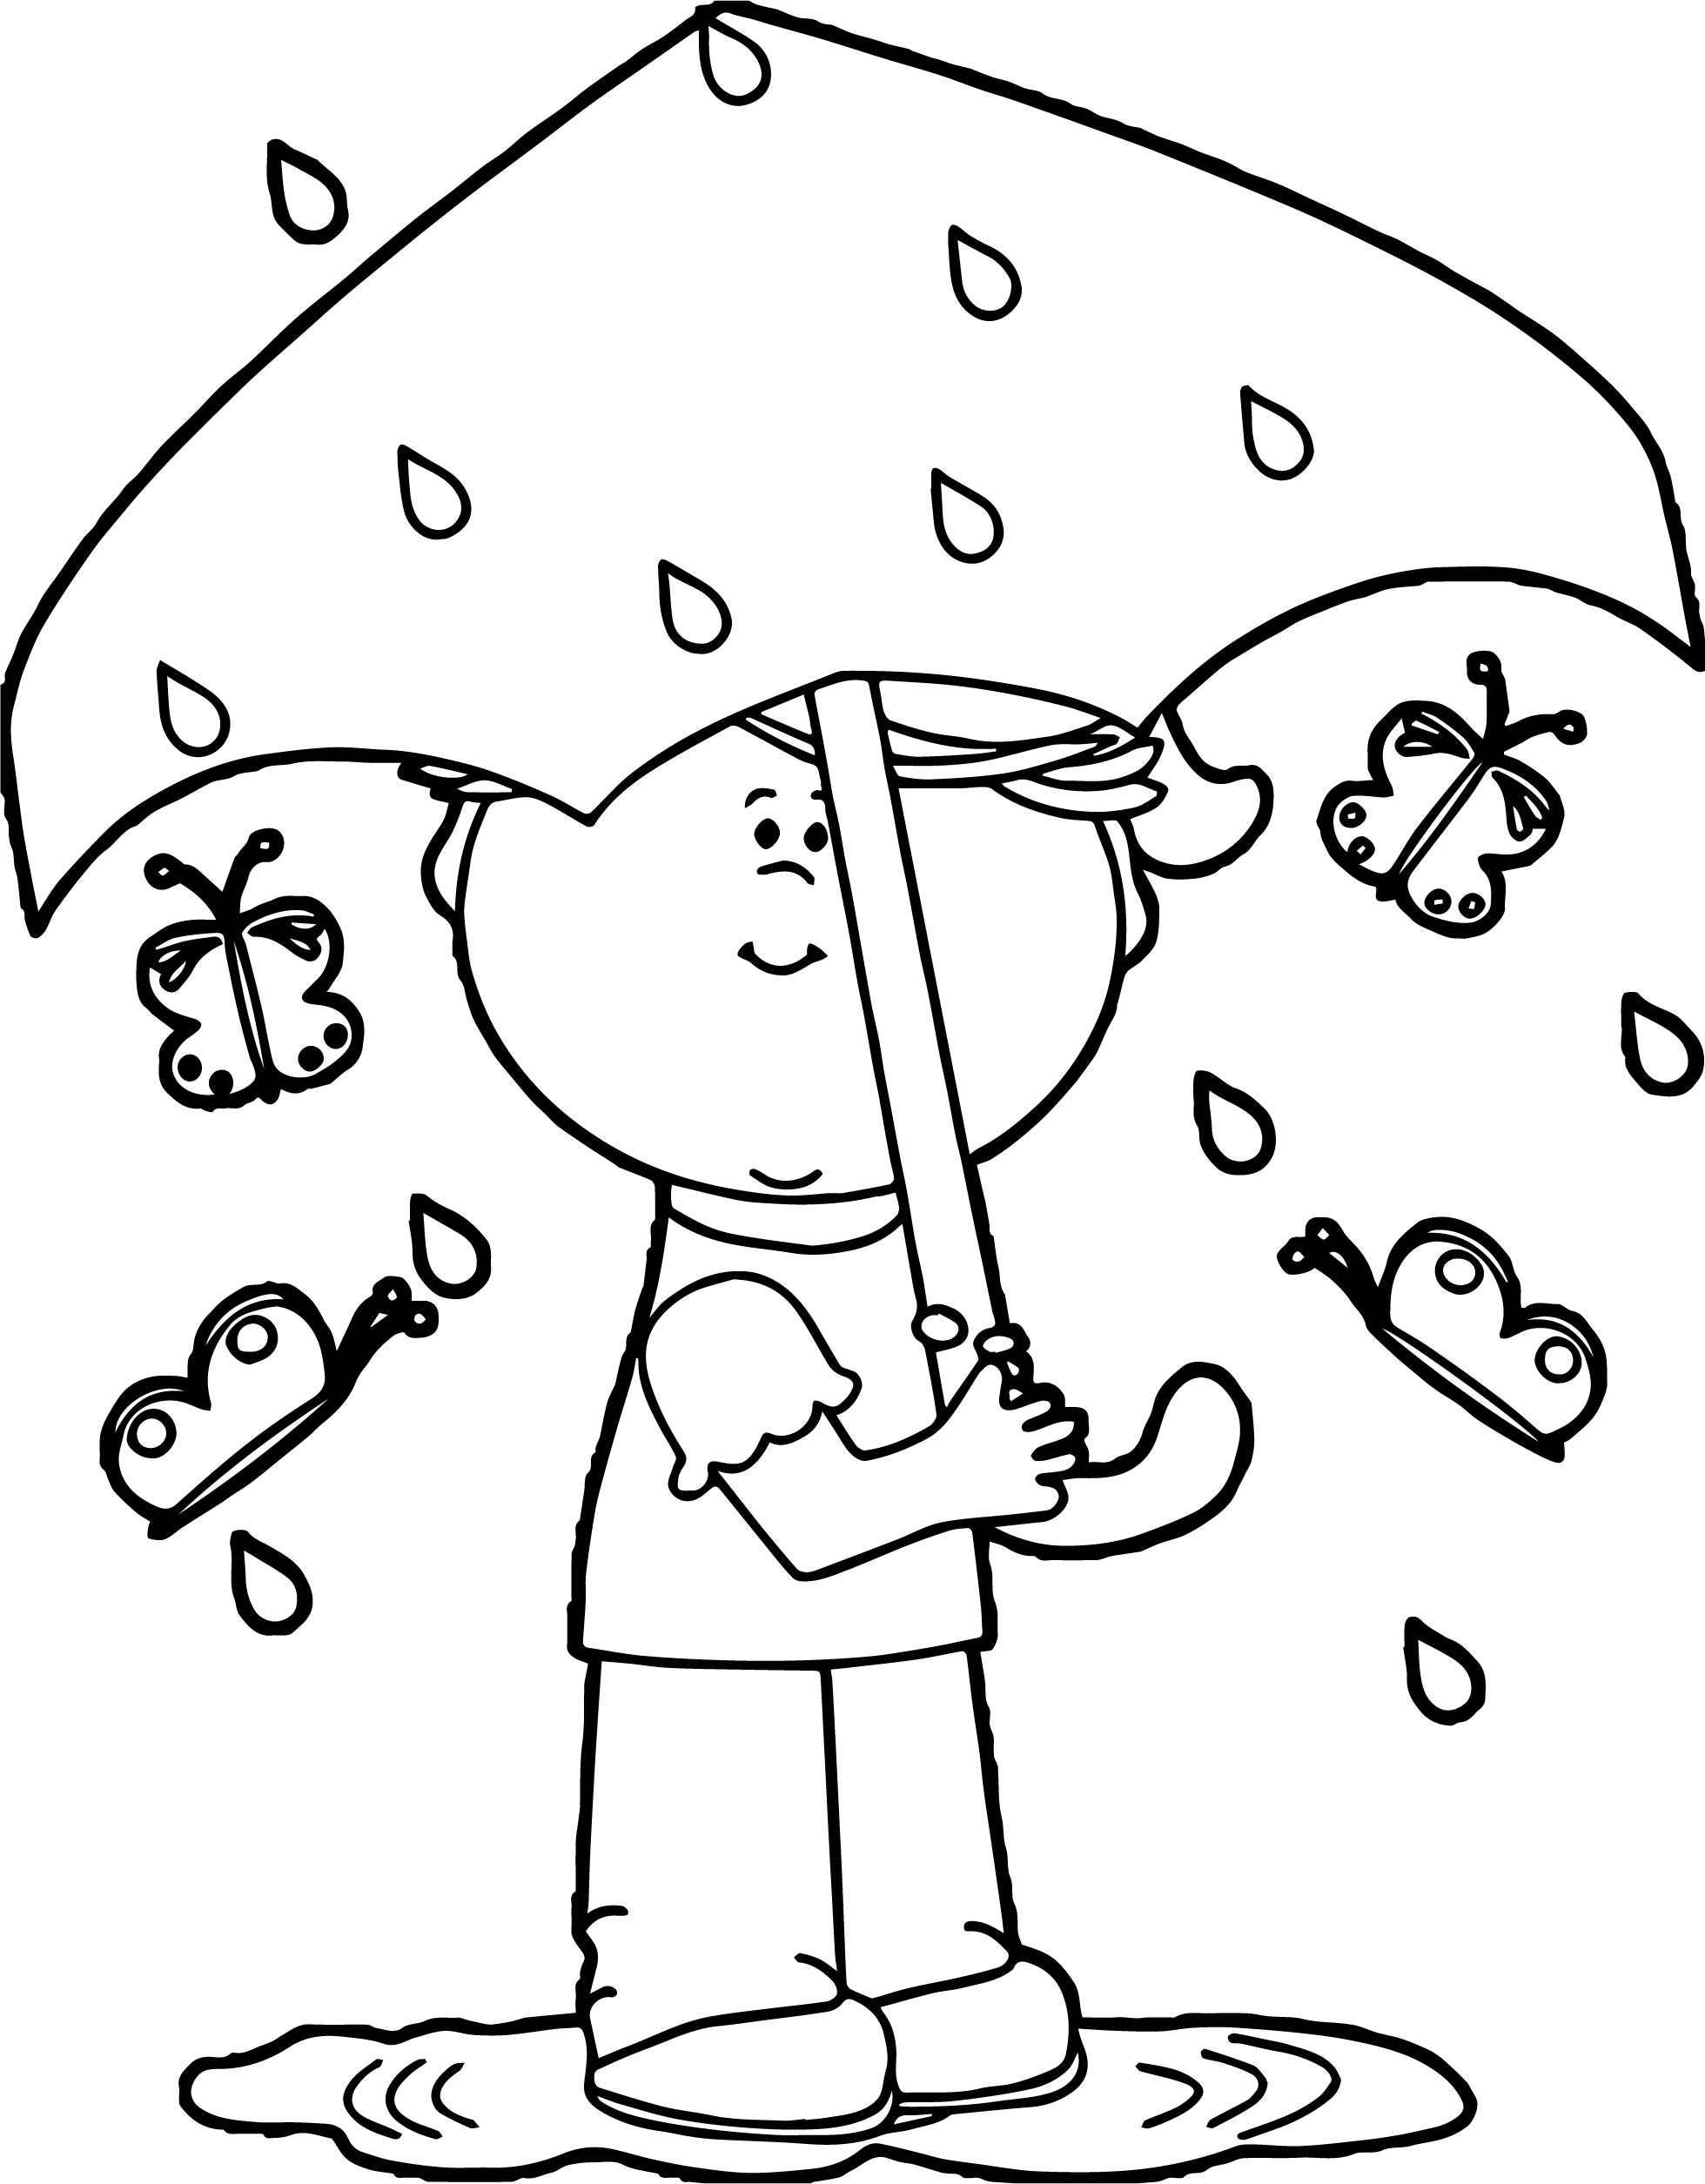 Coloring pages rain - Girl In Spring Rain Coloring Page